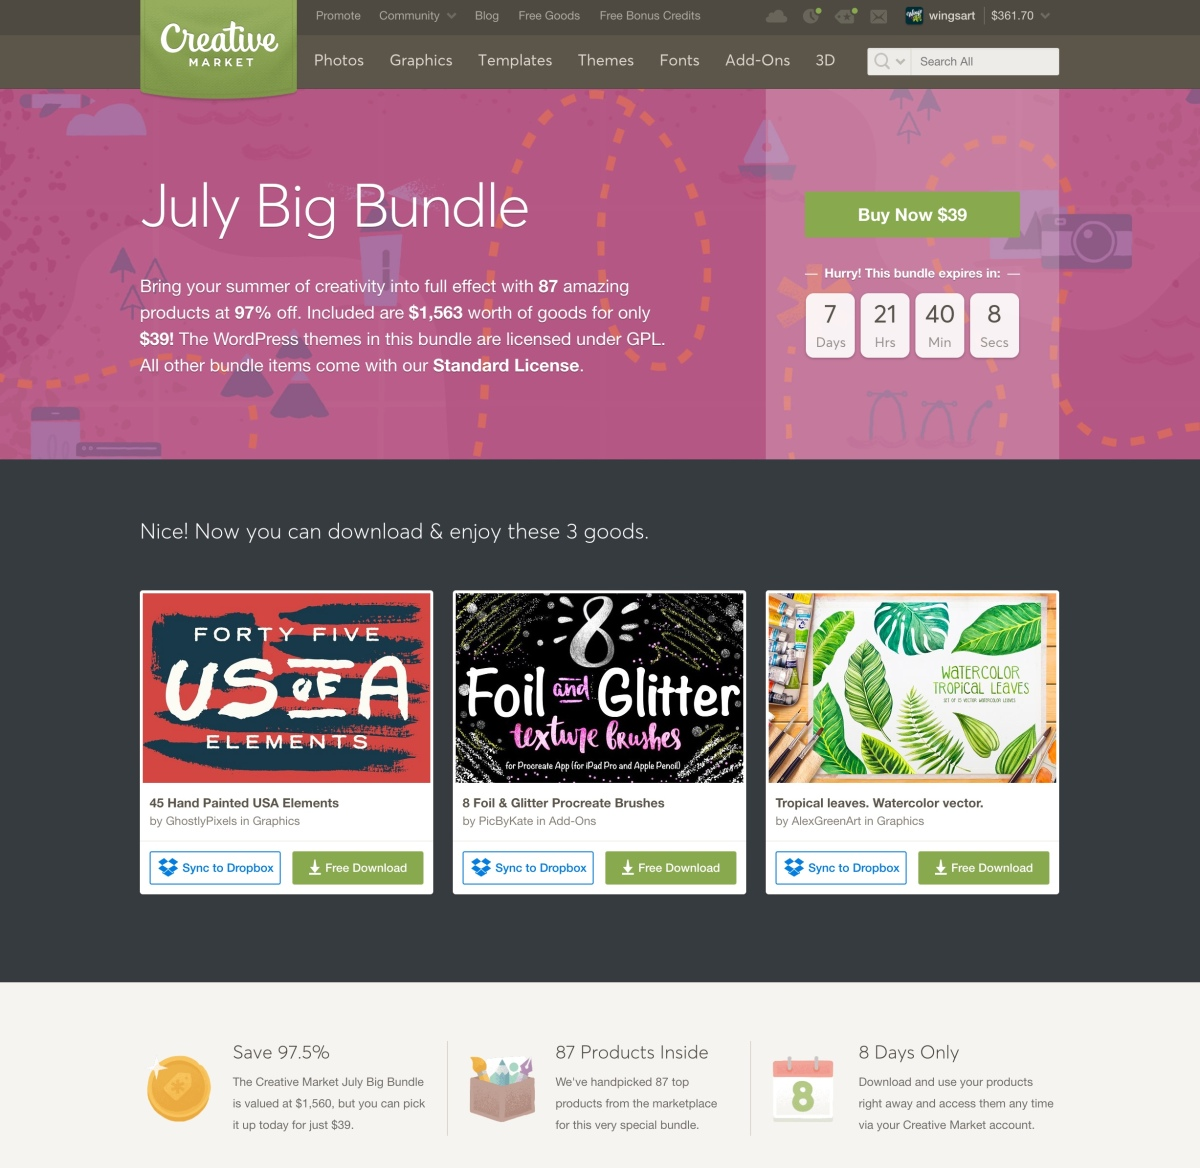 The Creative Market July Bundle $1,563 worth of goods for only $39!